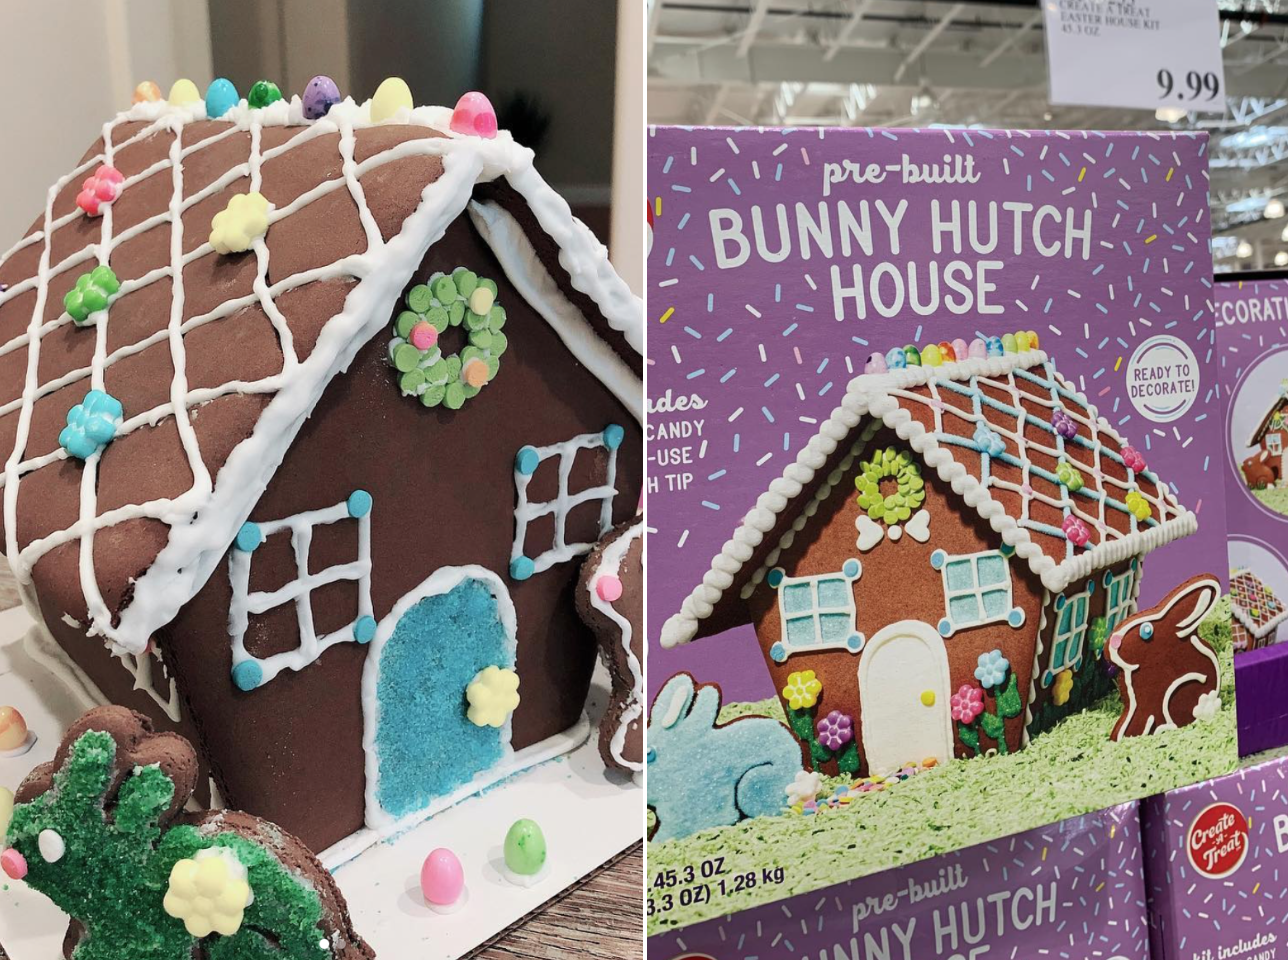 Costco Is Selling Cookie Bunny Hutches for Easter